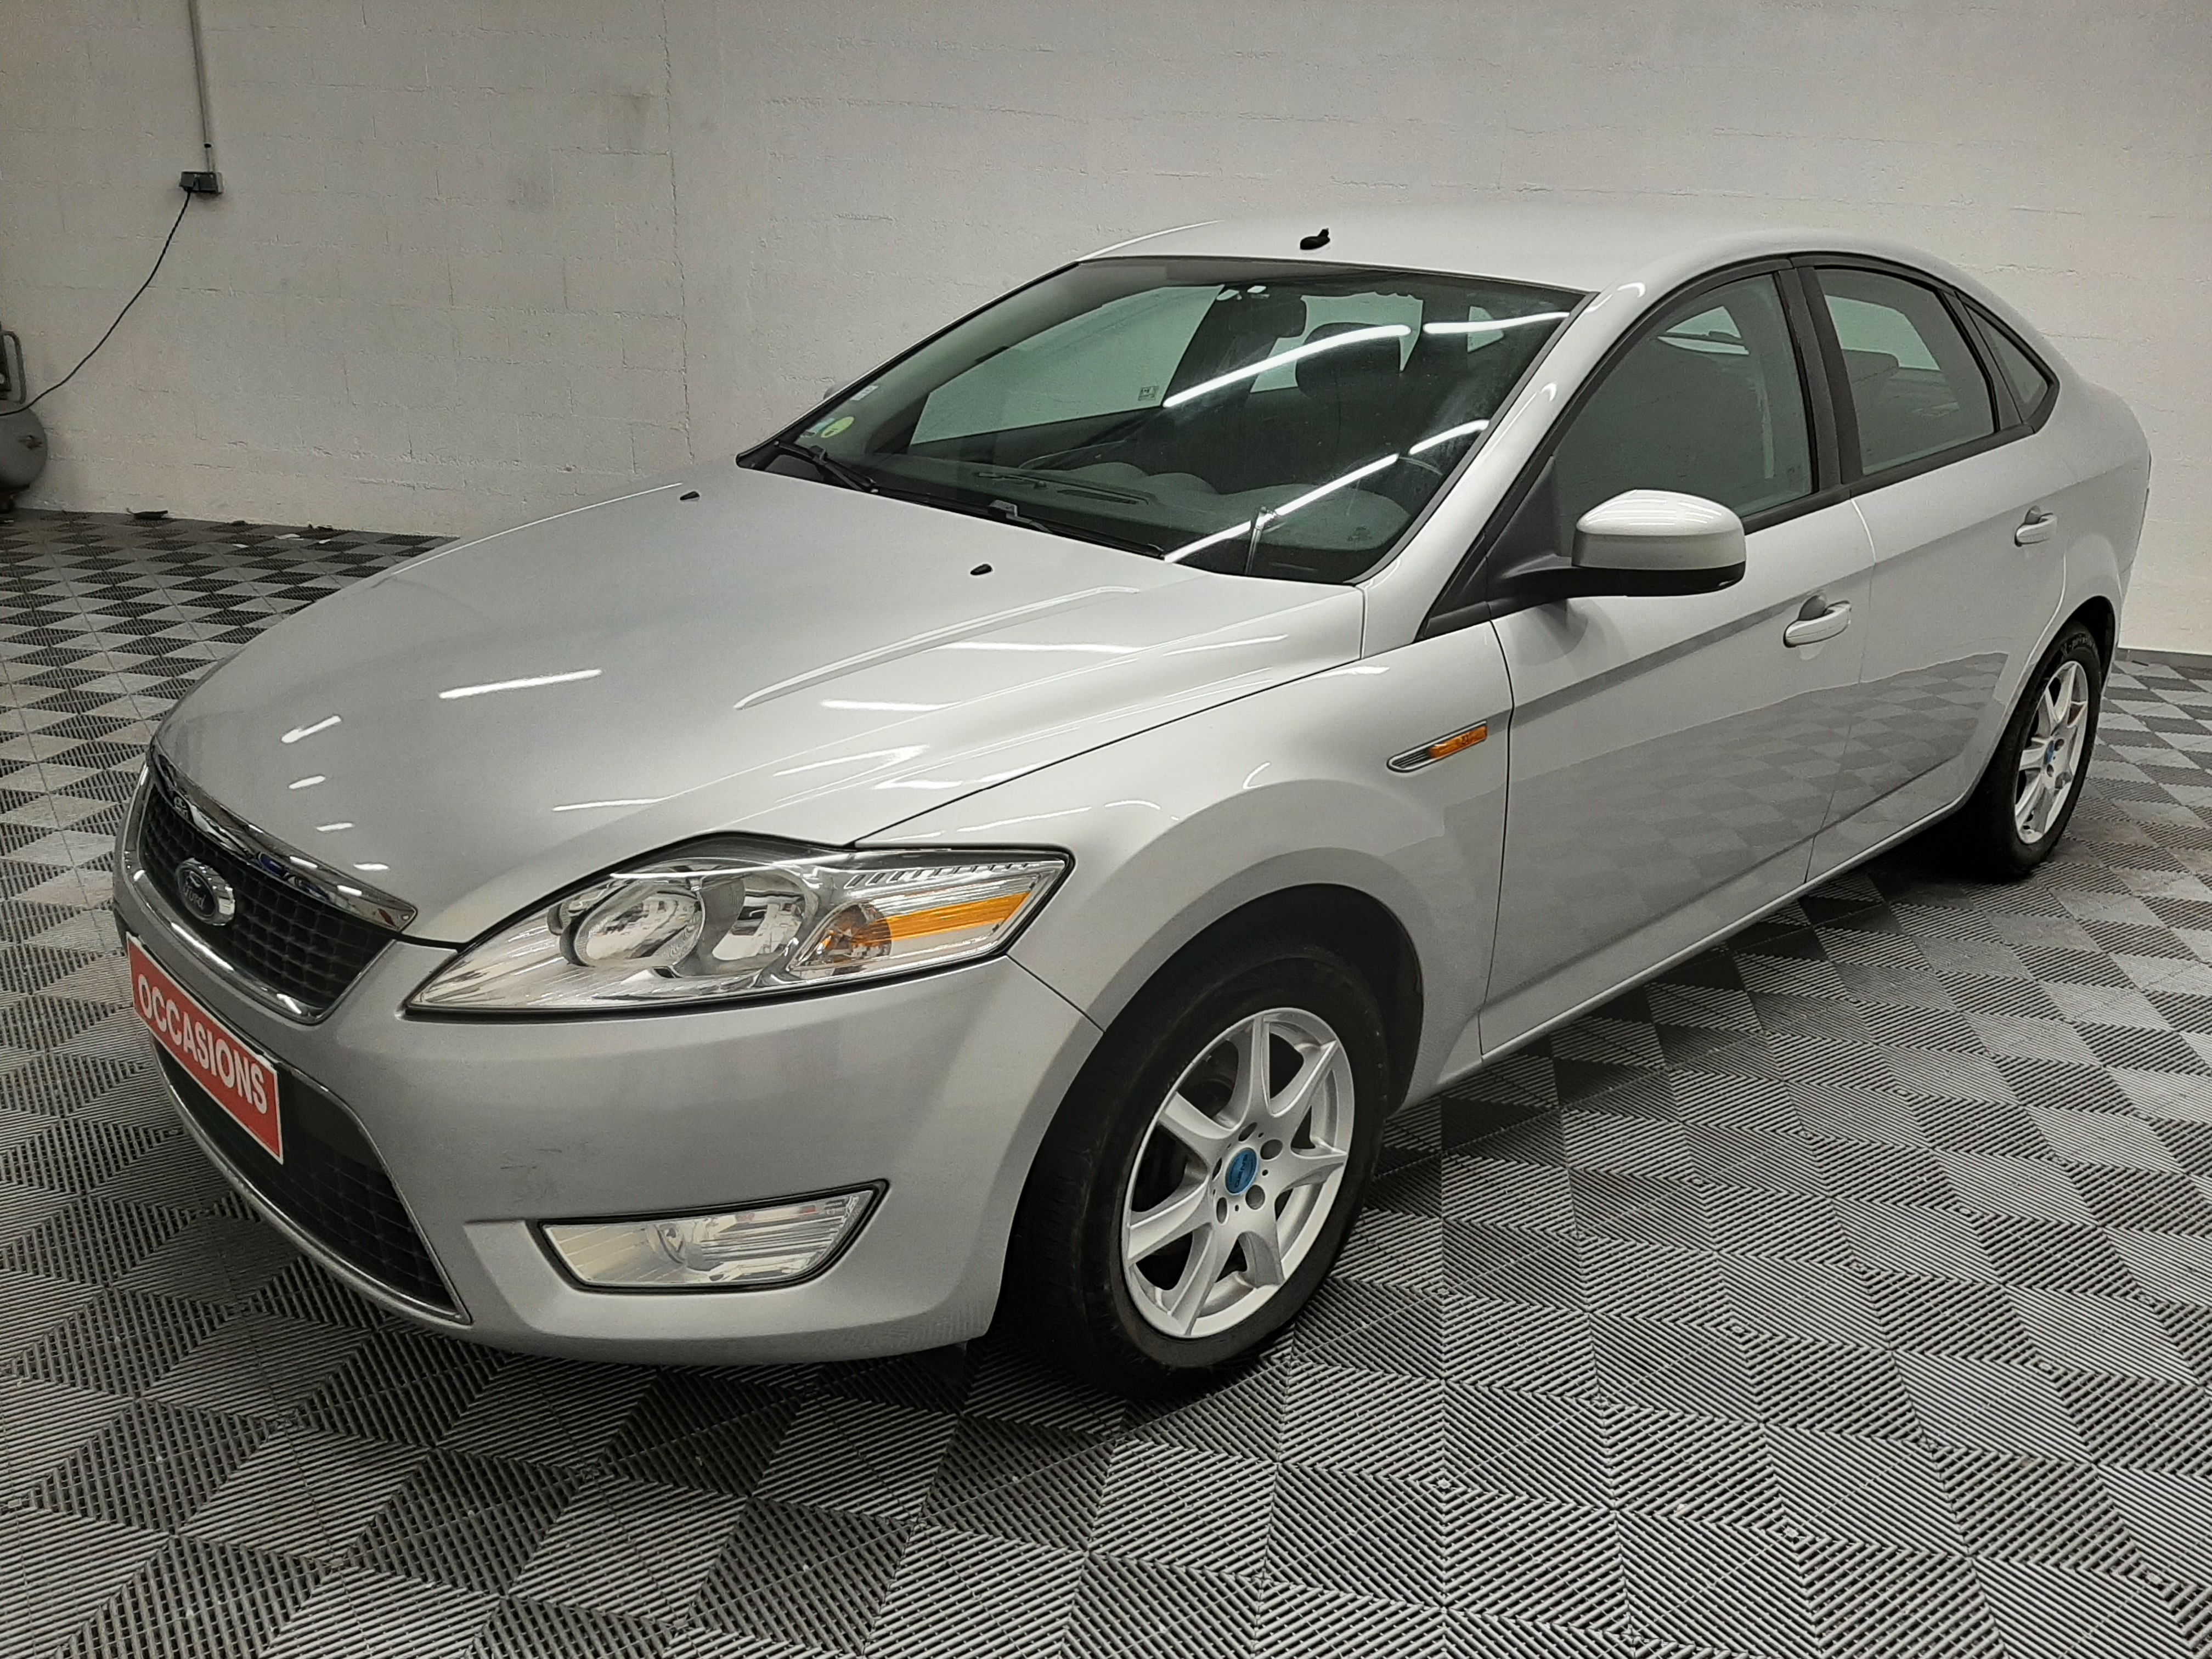 FORD MONDEO 2.0 TDCi 115 FAP Trend d'occasion